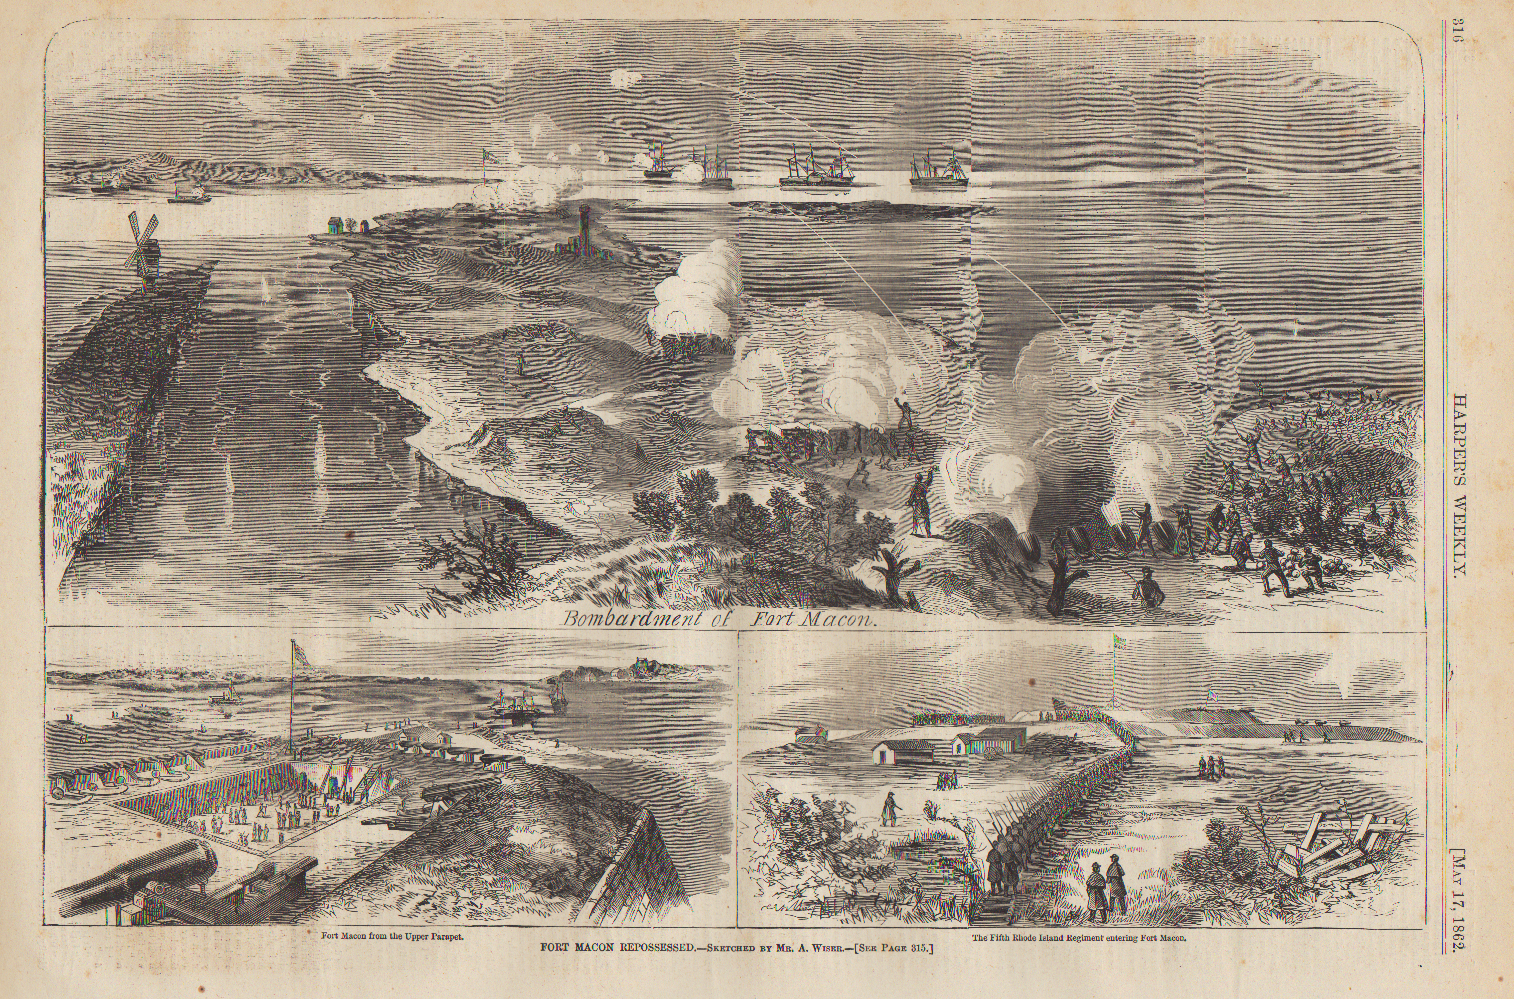 Bombardment of Fort Macon by Union forces: April 25, 1862